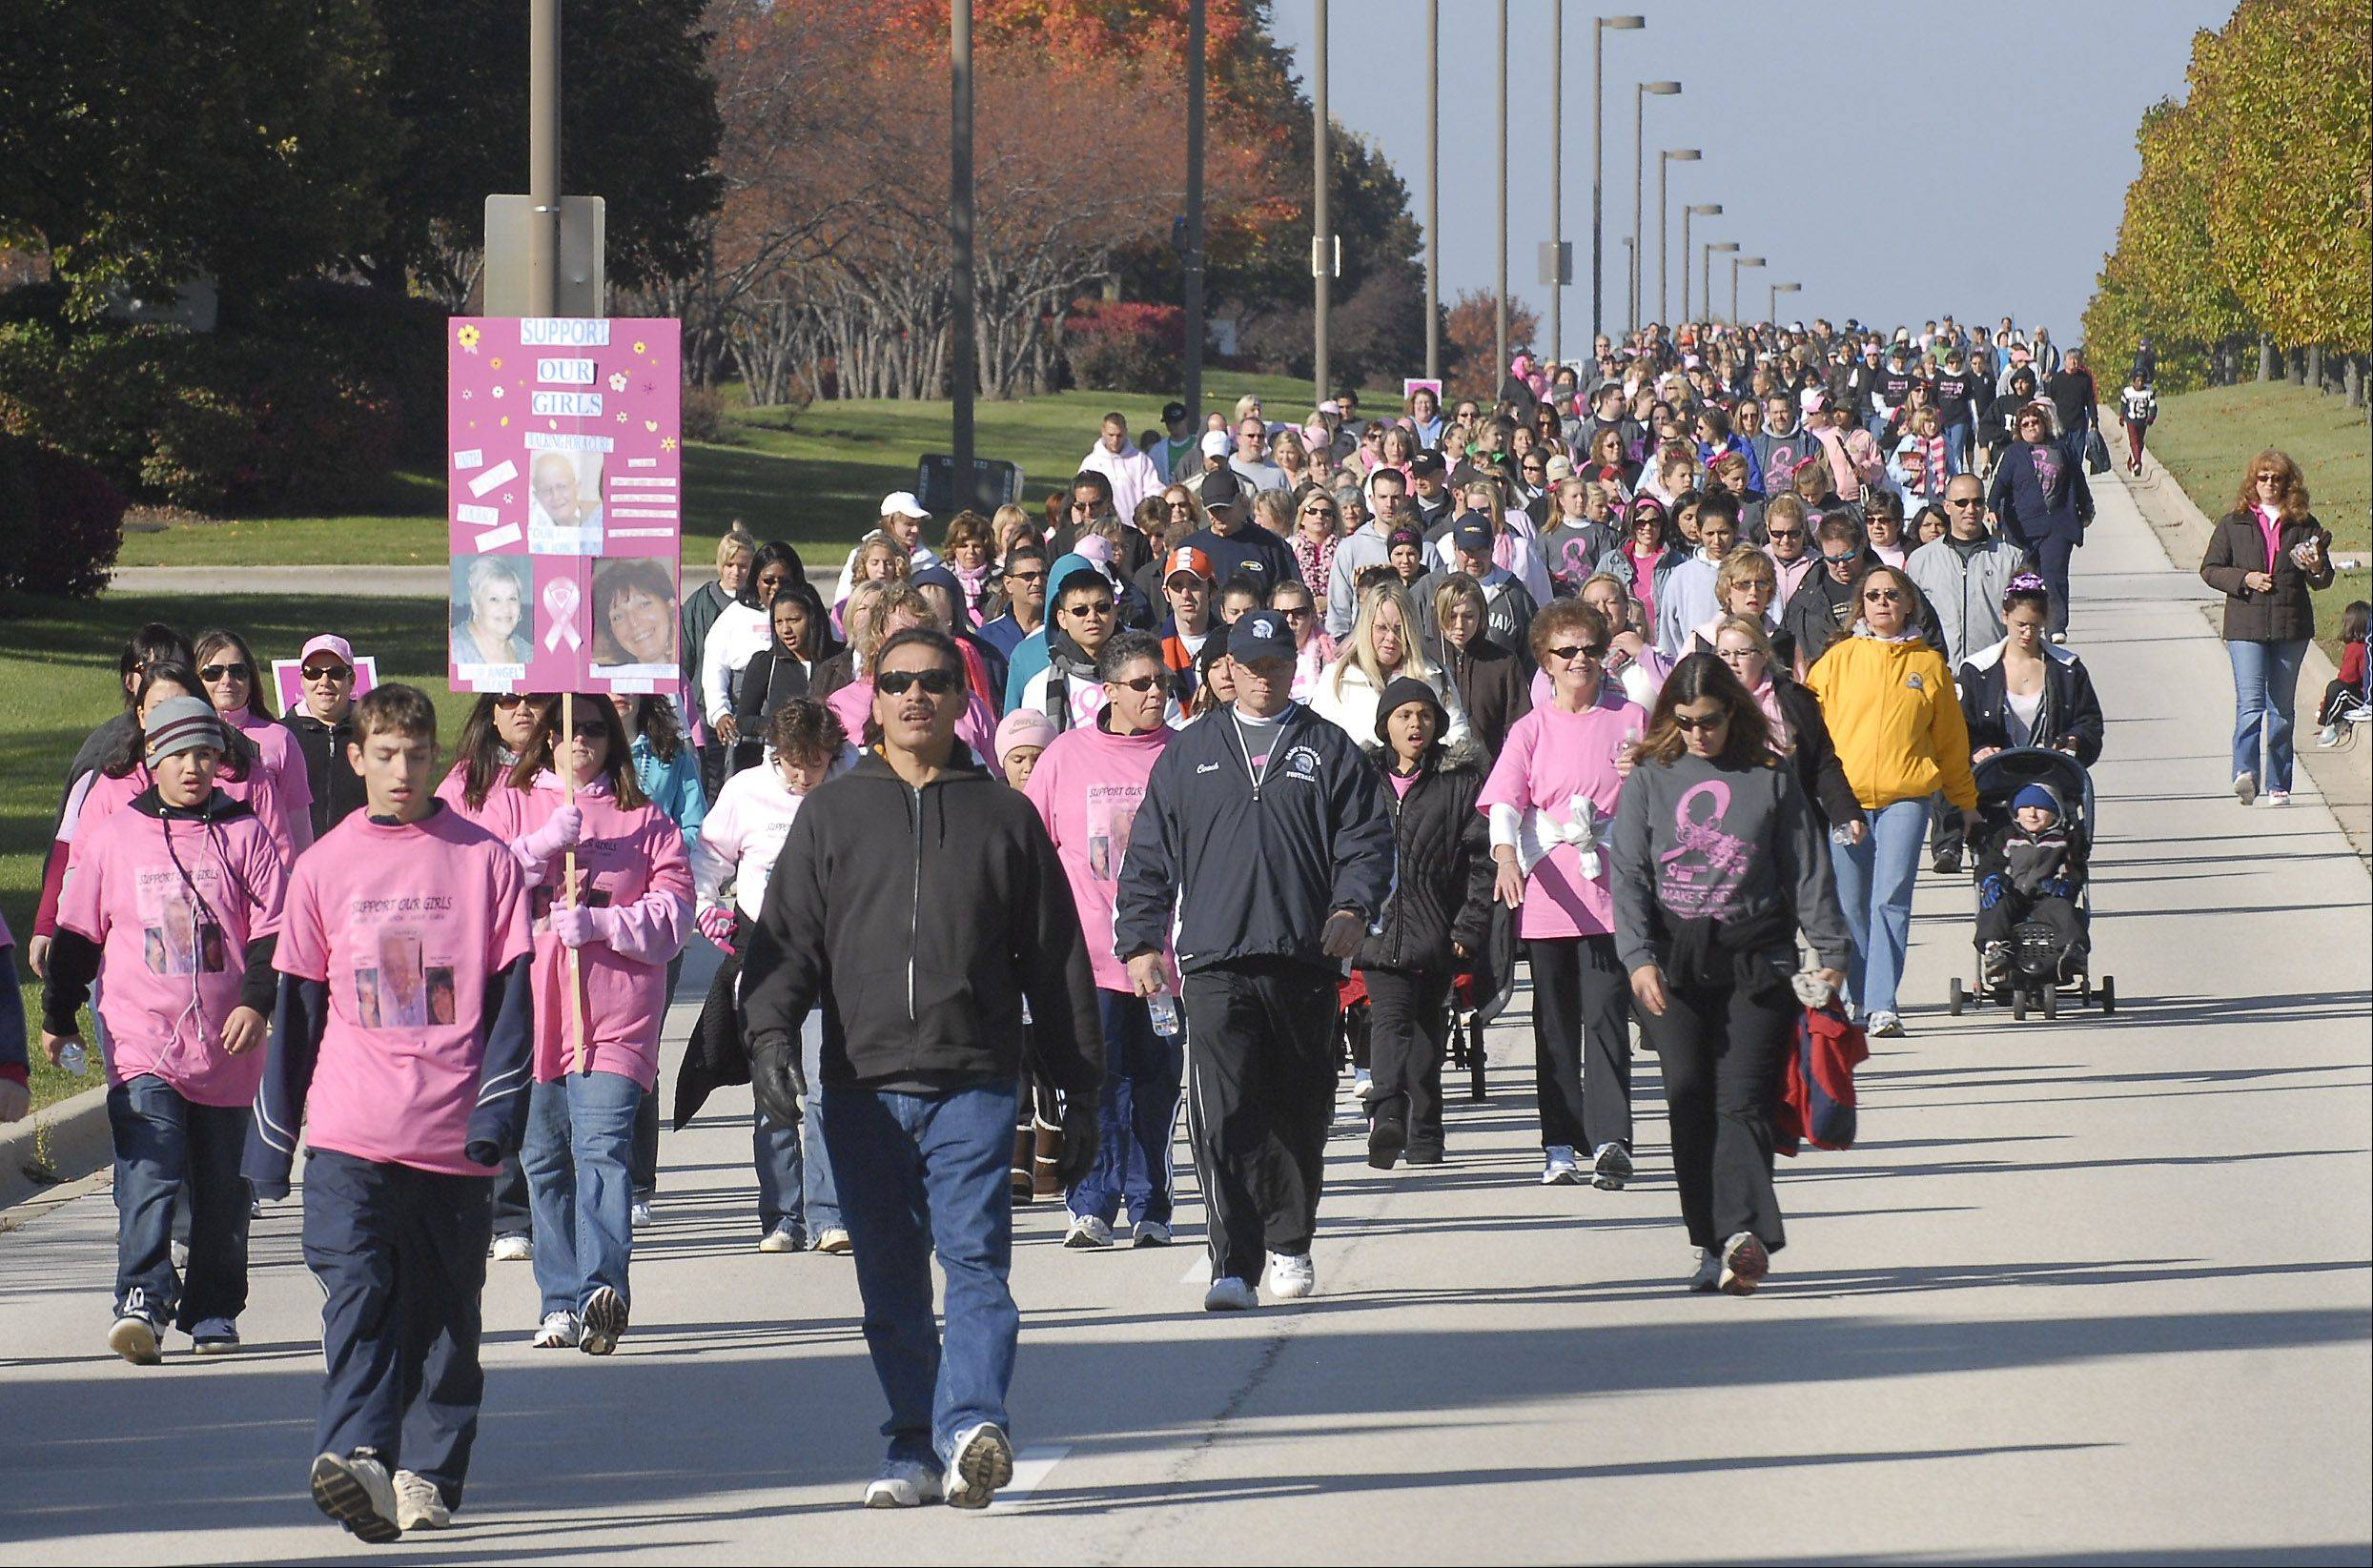 Participants -- many in pink, the signature color in the fight against breast cancer -- will walk over the next two weekends in Making Strides Against Breast Cancer events to support those battling the disease, celebrate those who have emerged cancer-free and remember those taken by the disease.